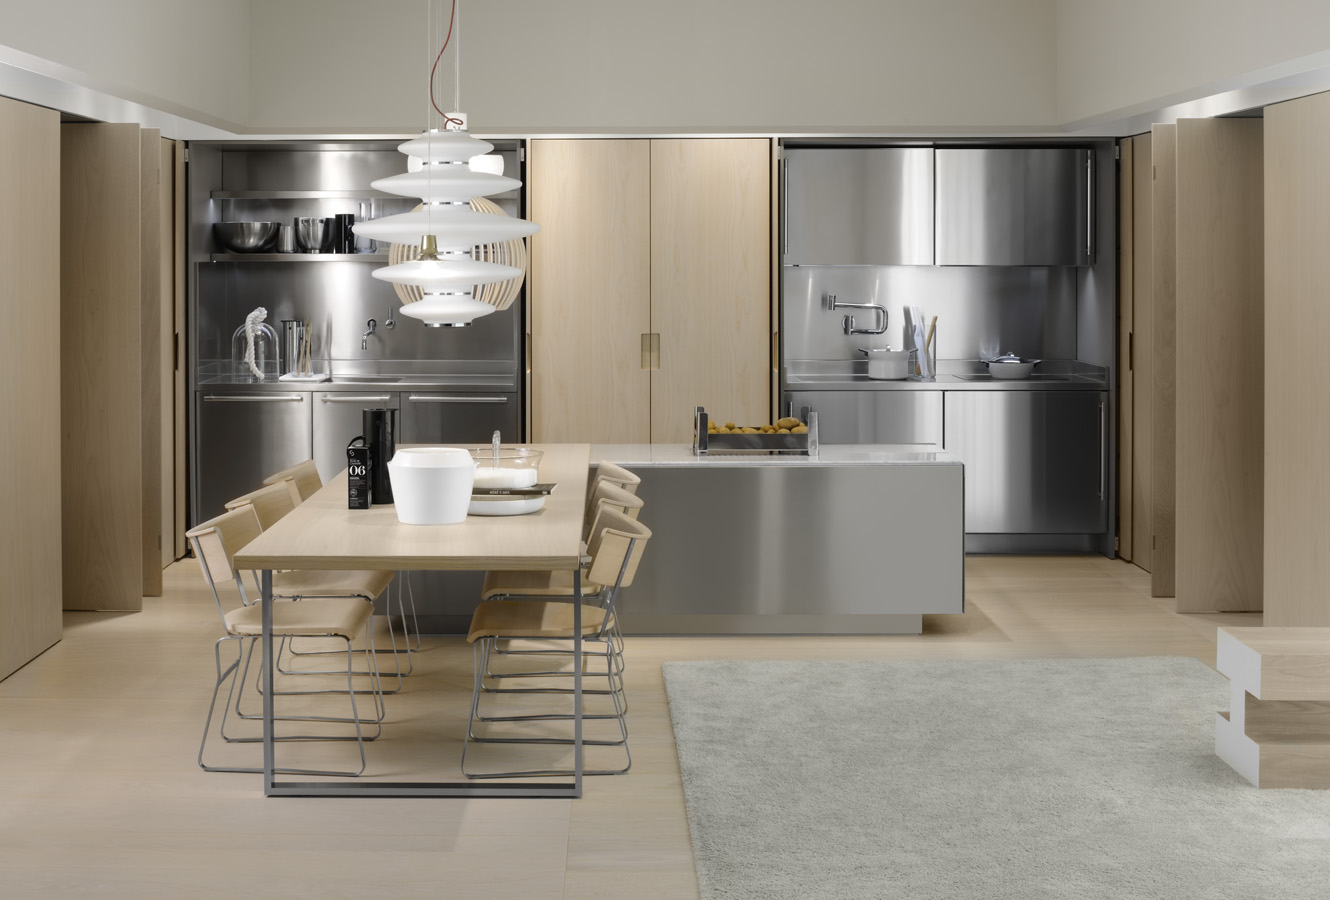 Cerniere Cucina Scavolini Modern Italian Kitchen Design From Arclinea